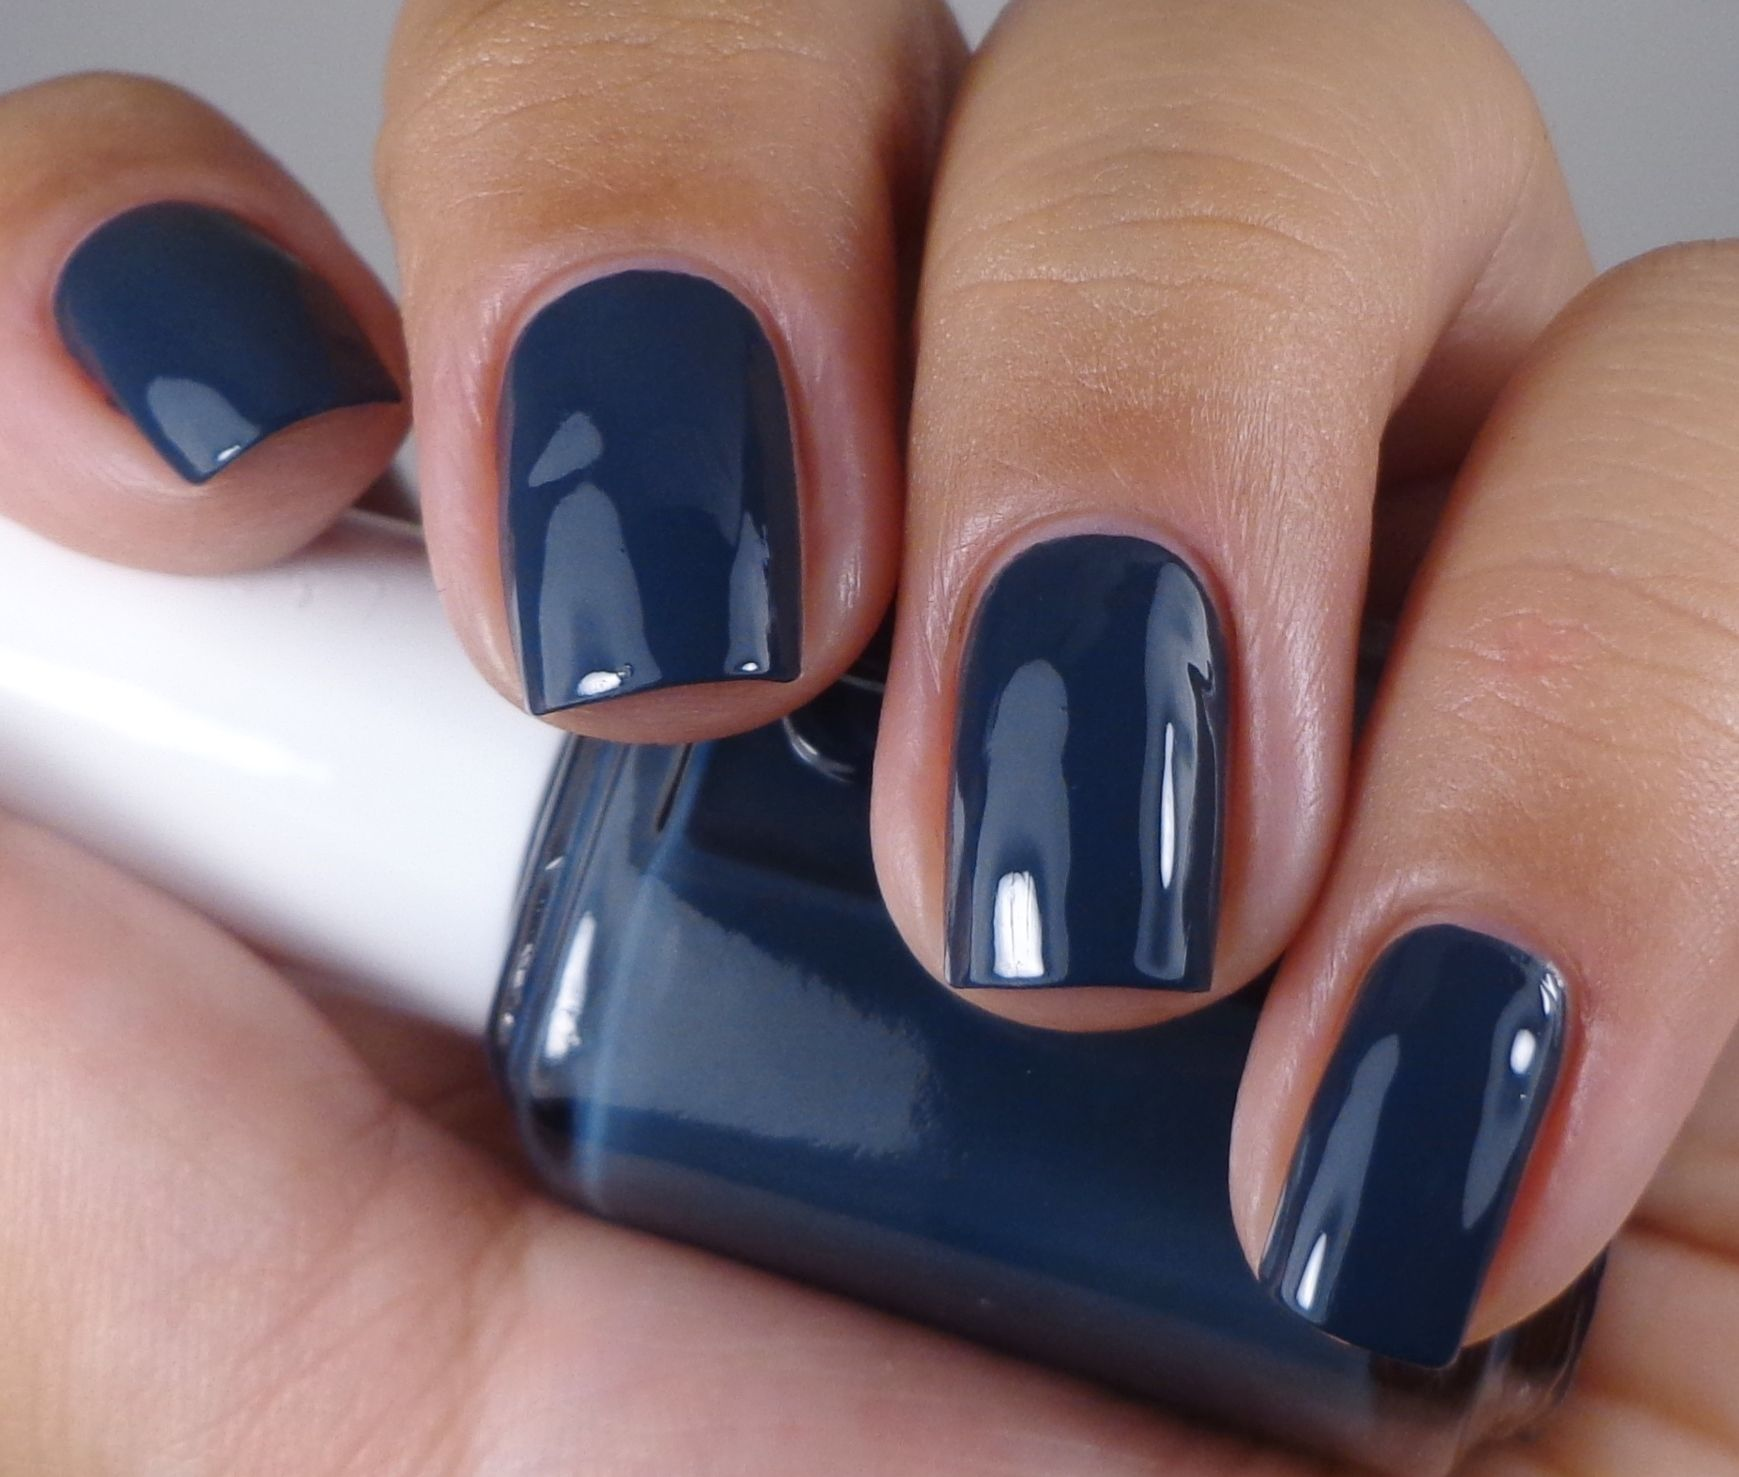 Essie The Perfect Cover Up 1 | My style | Pinterest | Esmalte, Salon ...